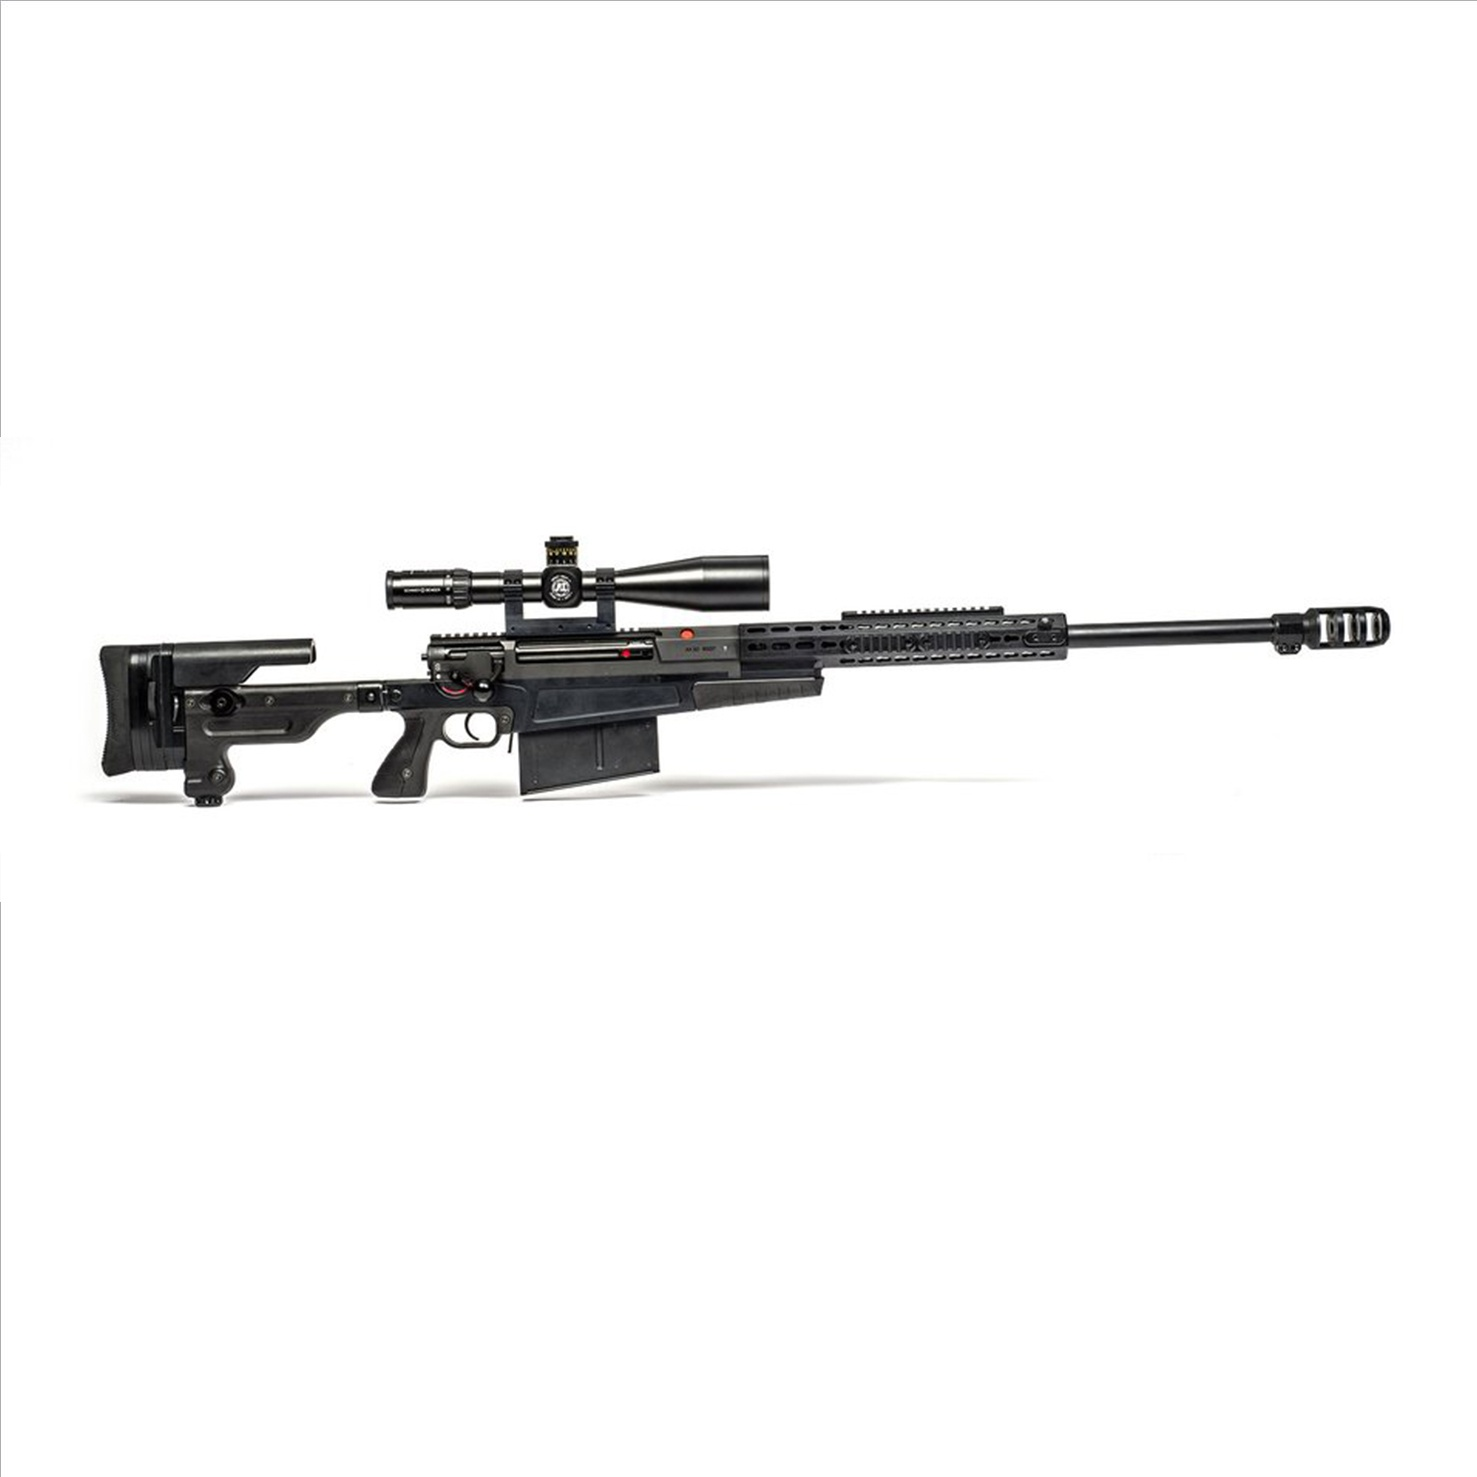 Anti Materiel Rifle accuracy int ax50